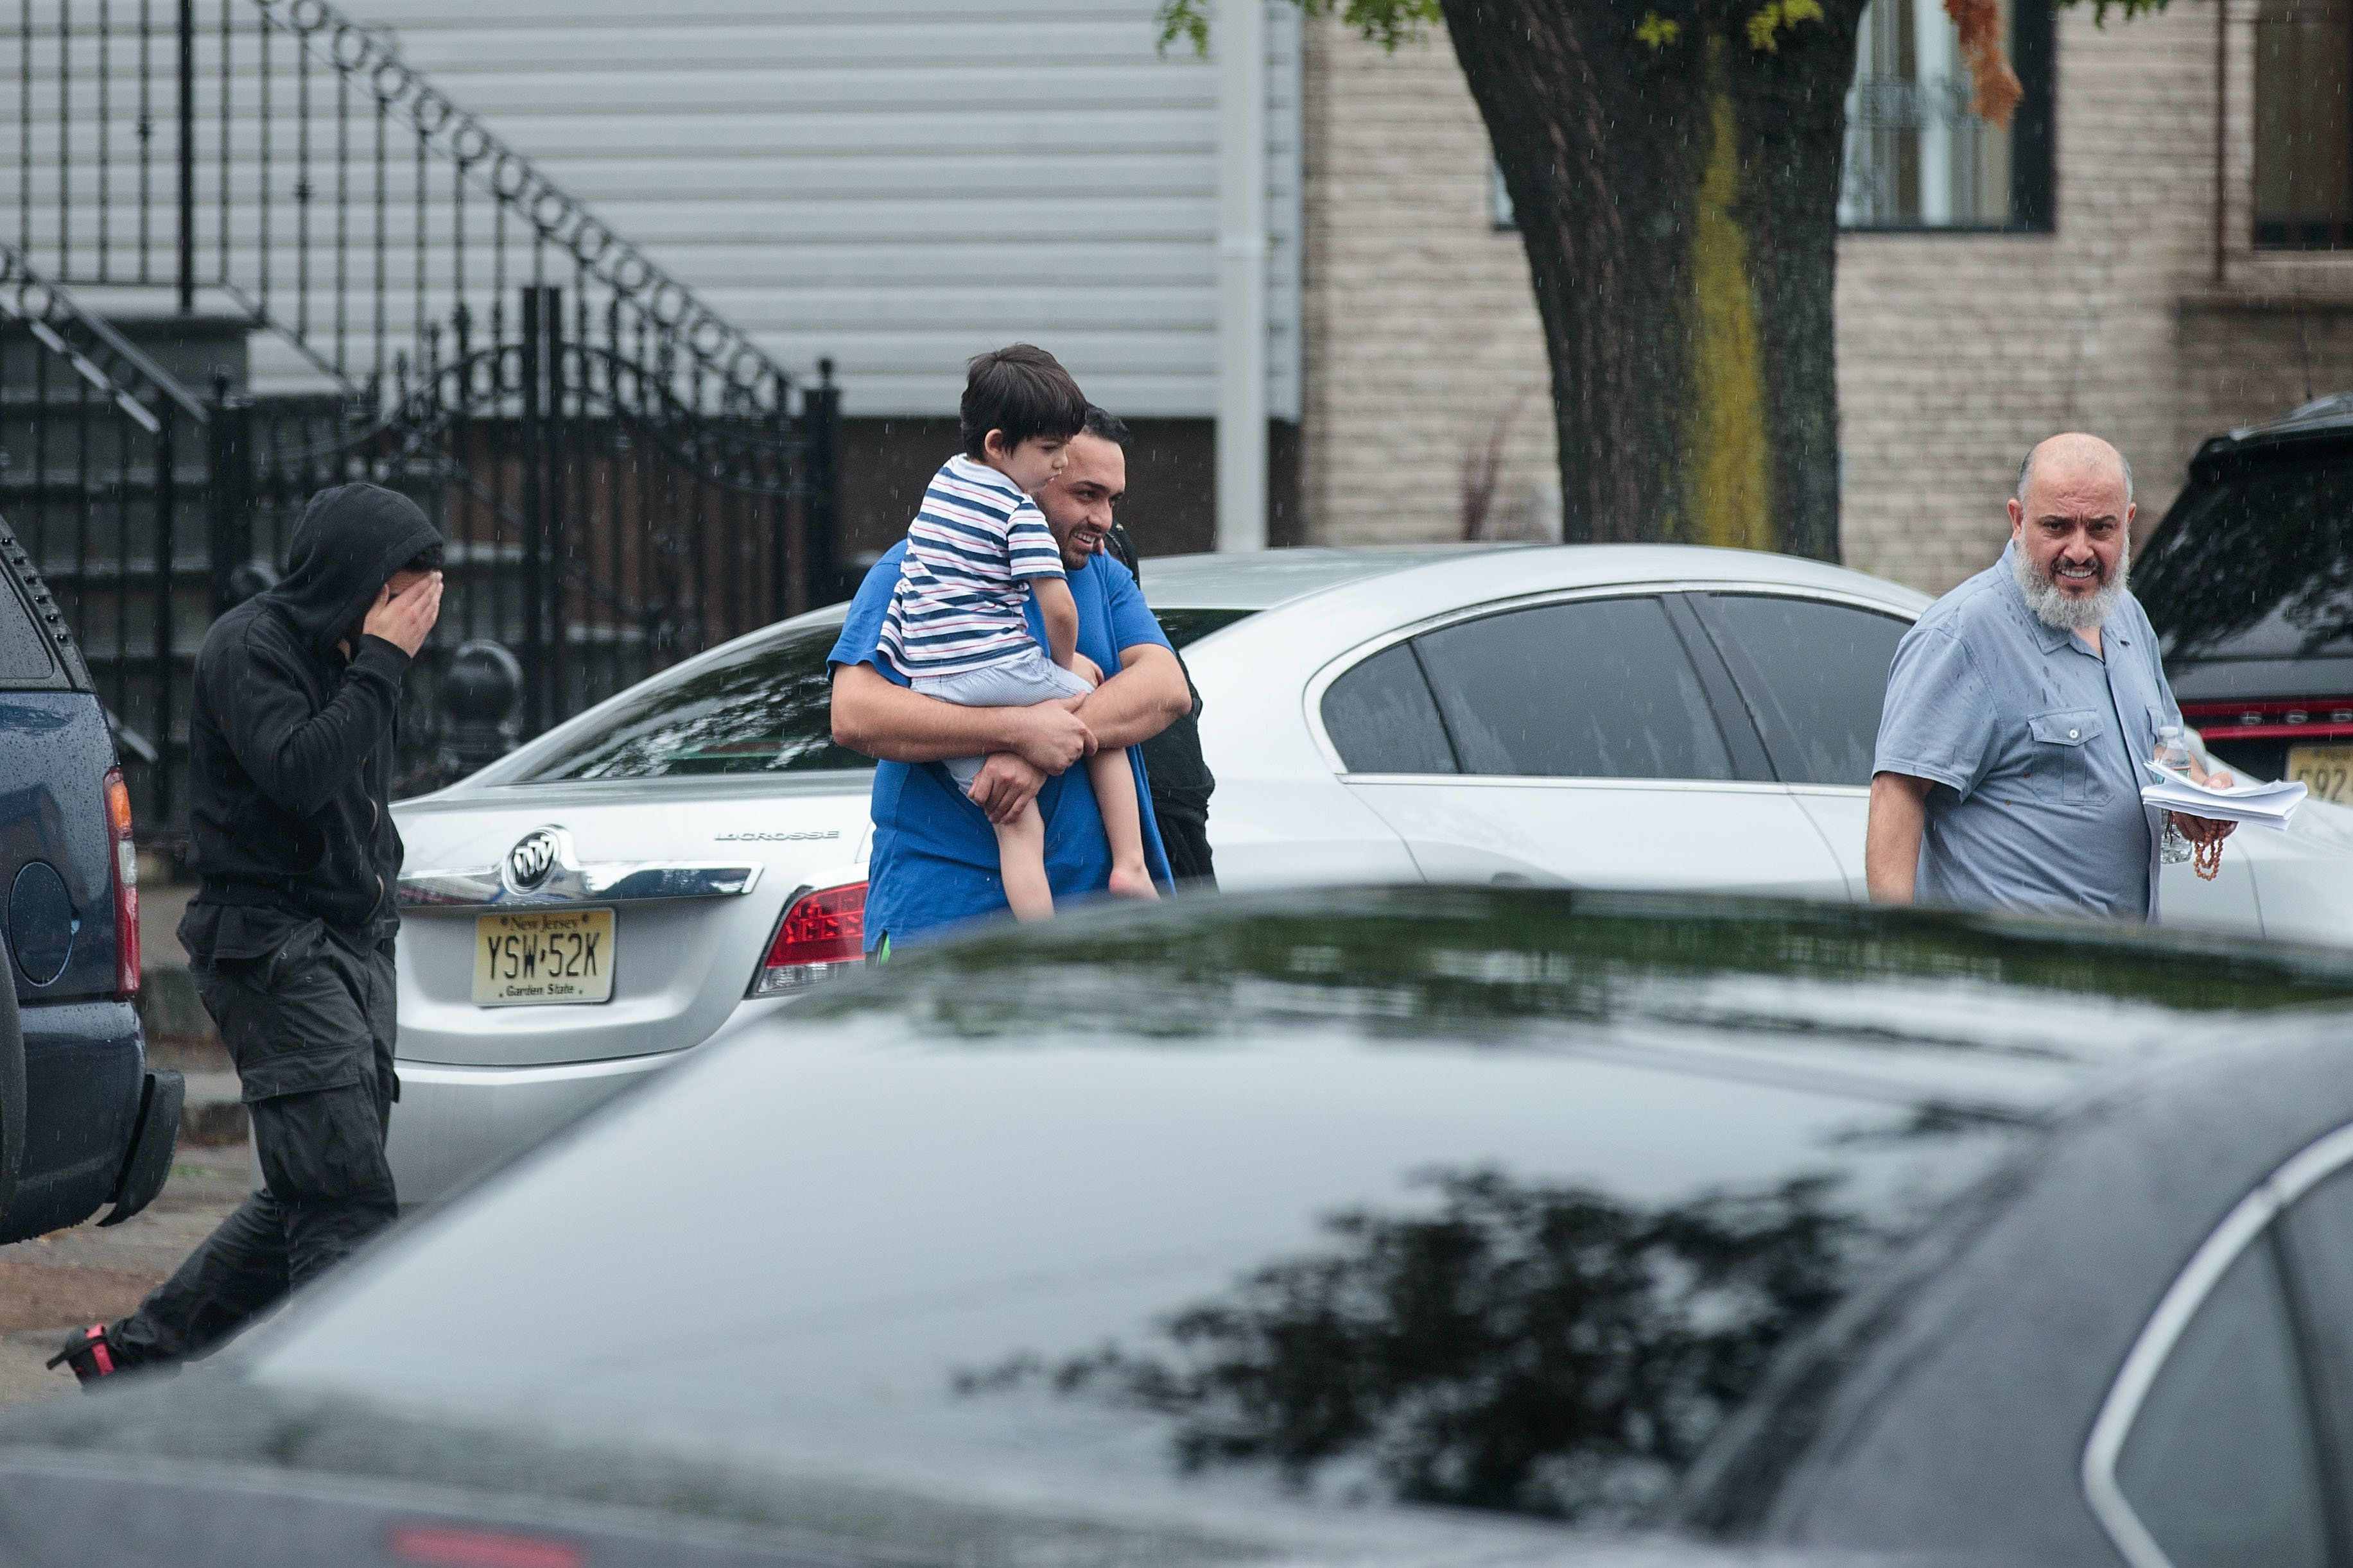 Mohammad Rahami leaves the family's fried chicken restaurant in Elizabeth, New Jersey, Monday. Rahami...